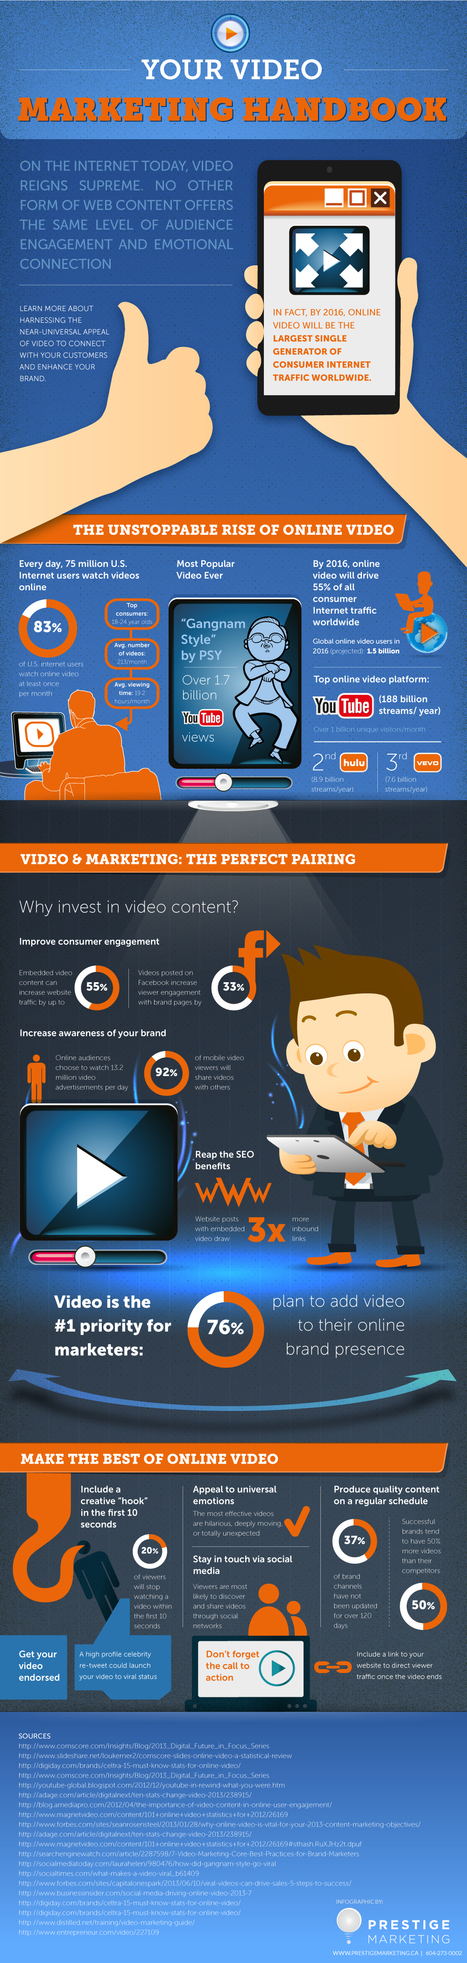 Your Video Marketing Handbook [Infographic] - Prestige Marketing | #TheMarketingAutomationAlert | The Marketing Technology Alert | Scoop.it